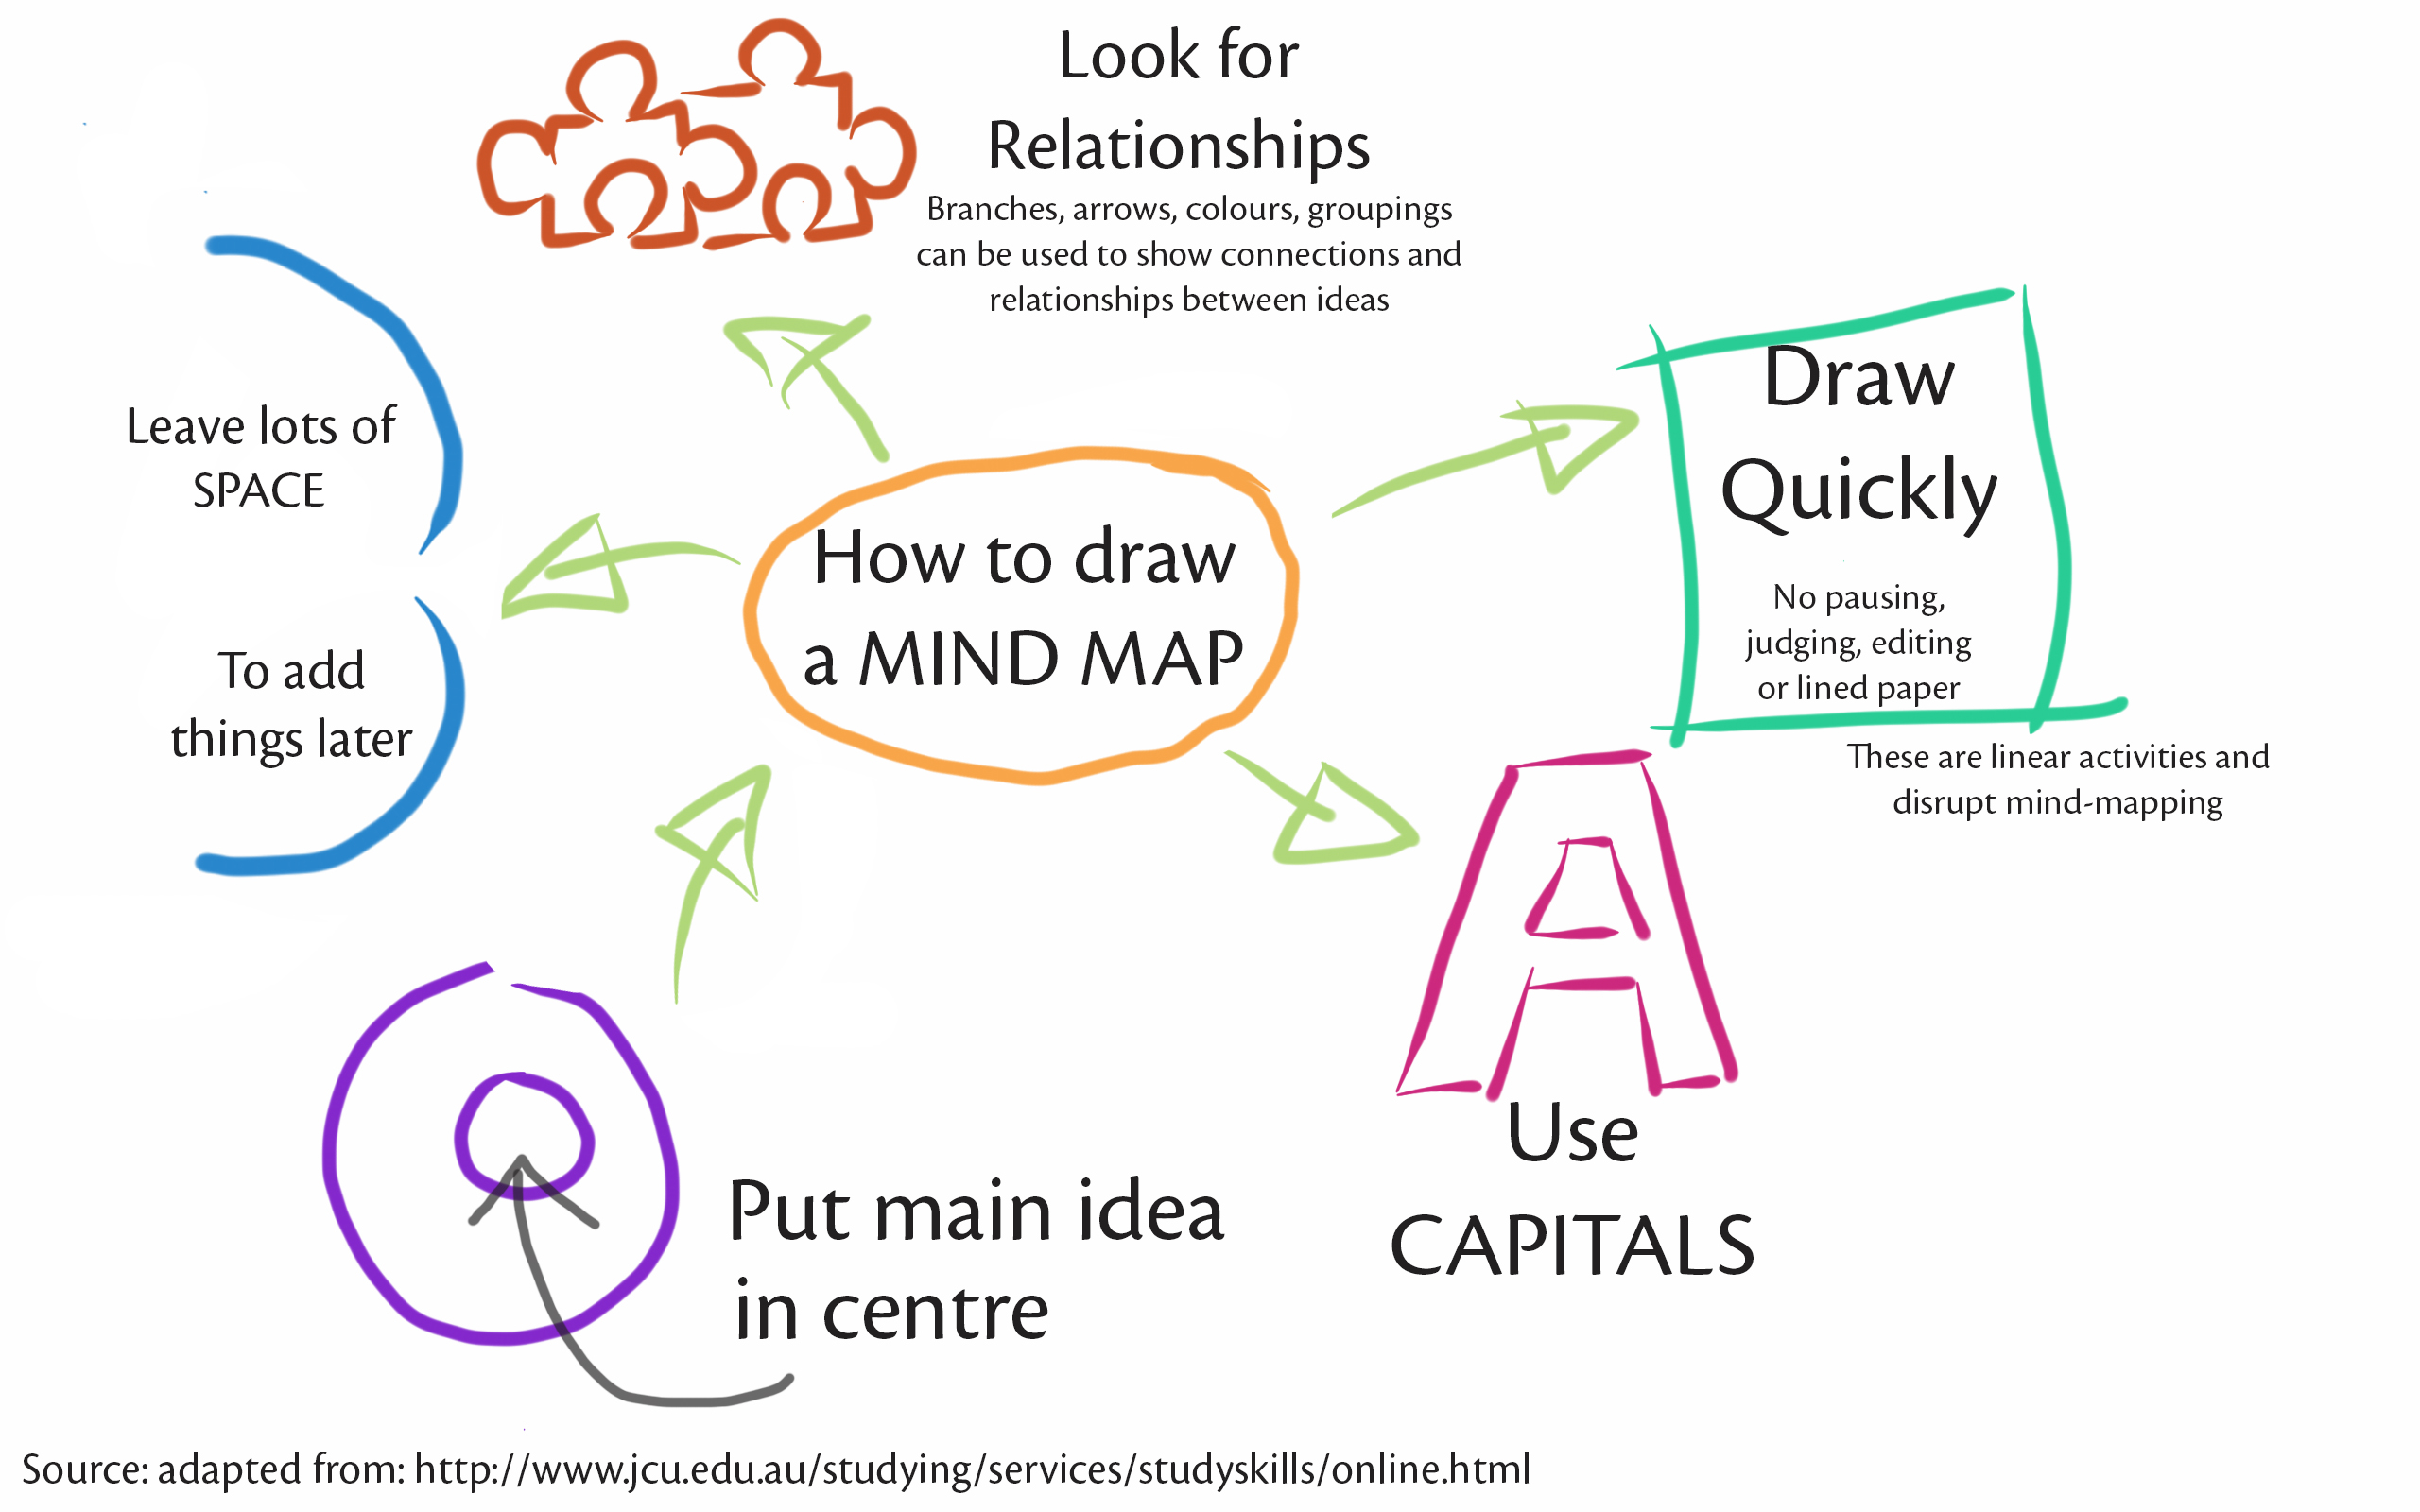 012 Research Paper Mindmap Free Plagiarism Checker For Students Online Toolkit Thepensters Striking Com Toolkit.thepensters.com Full